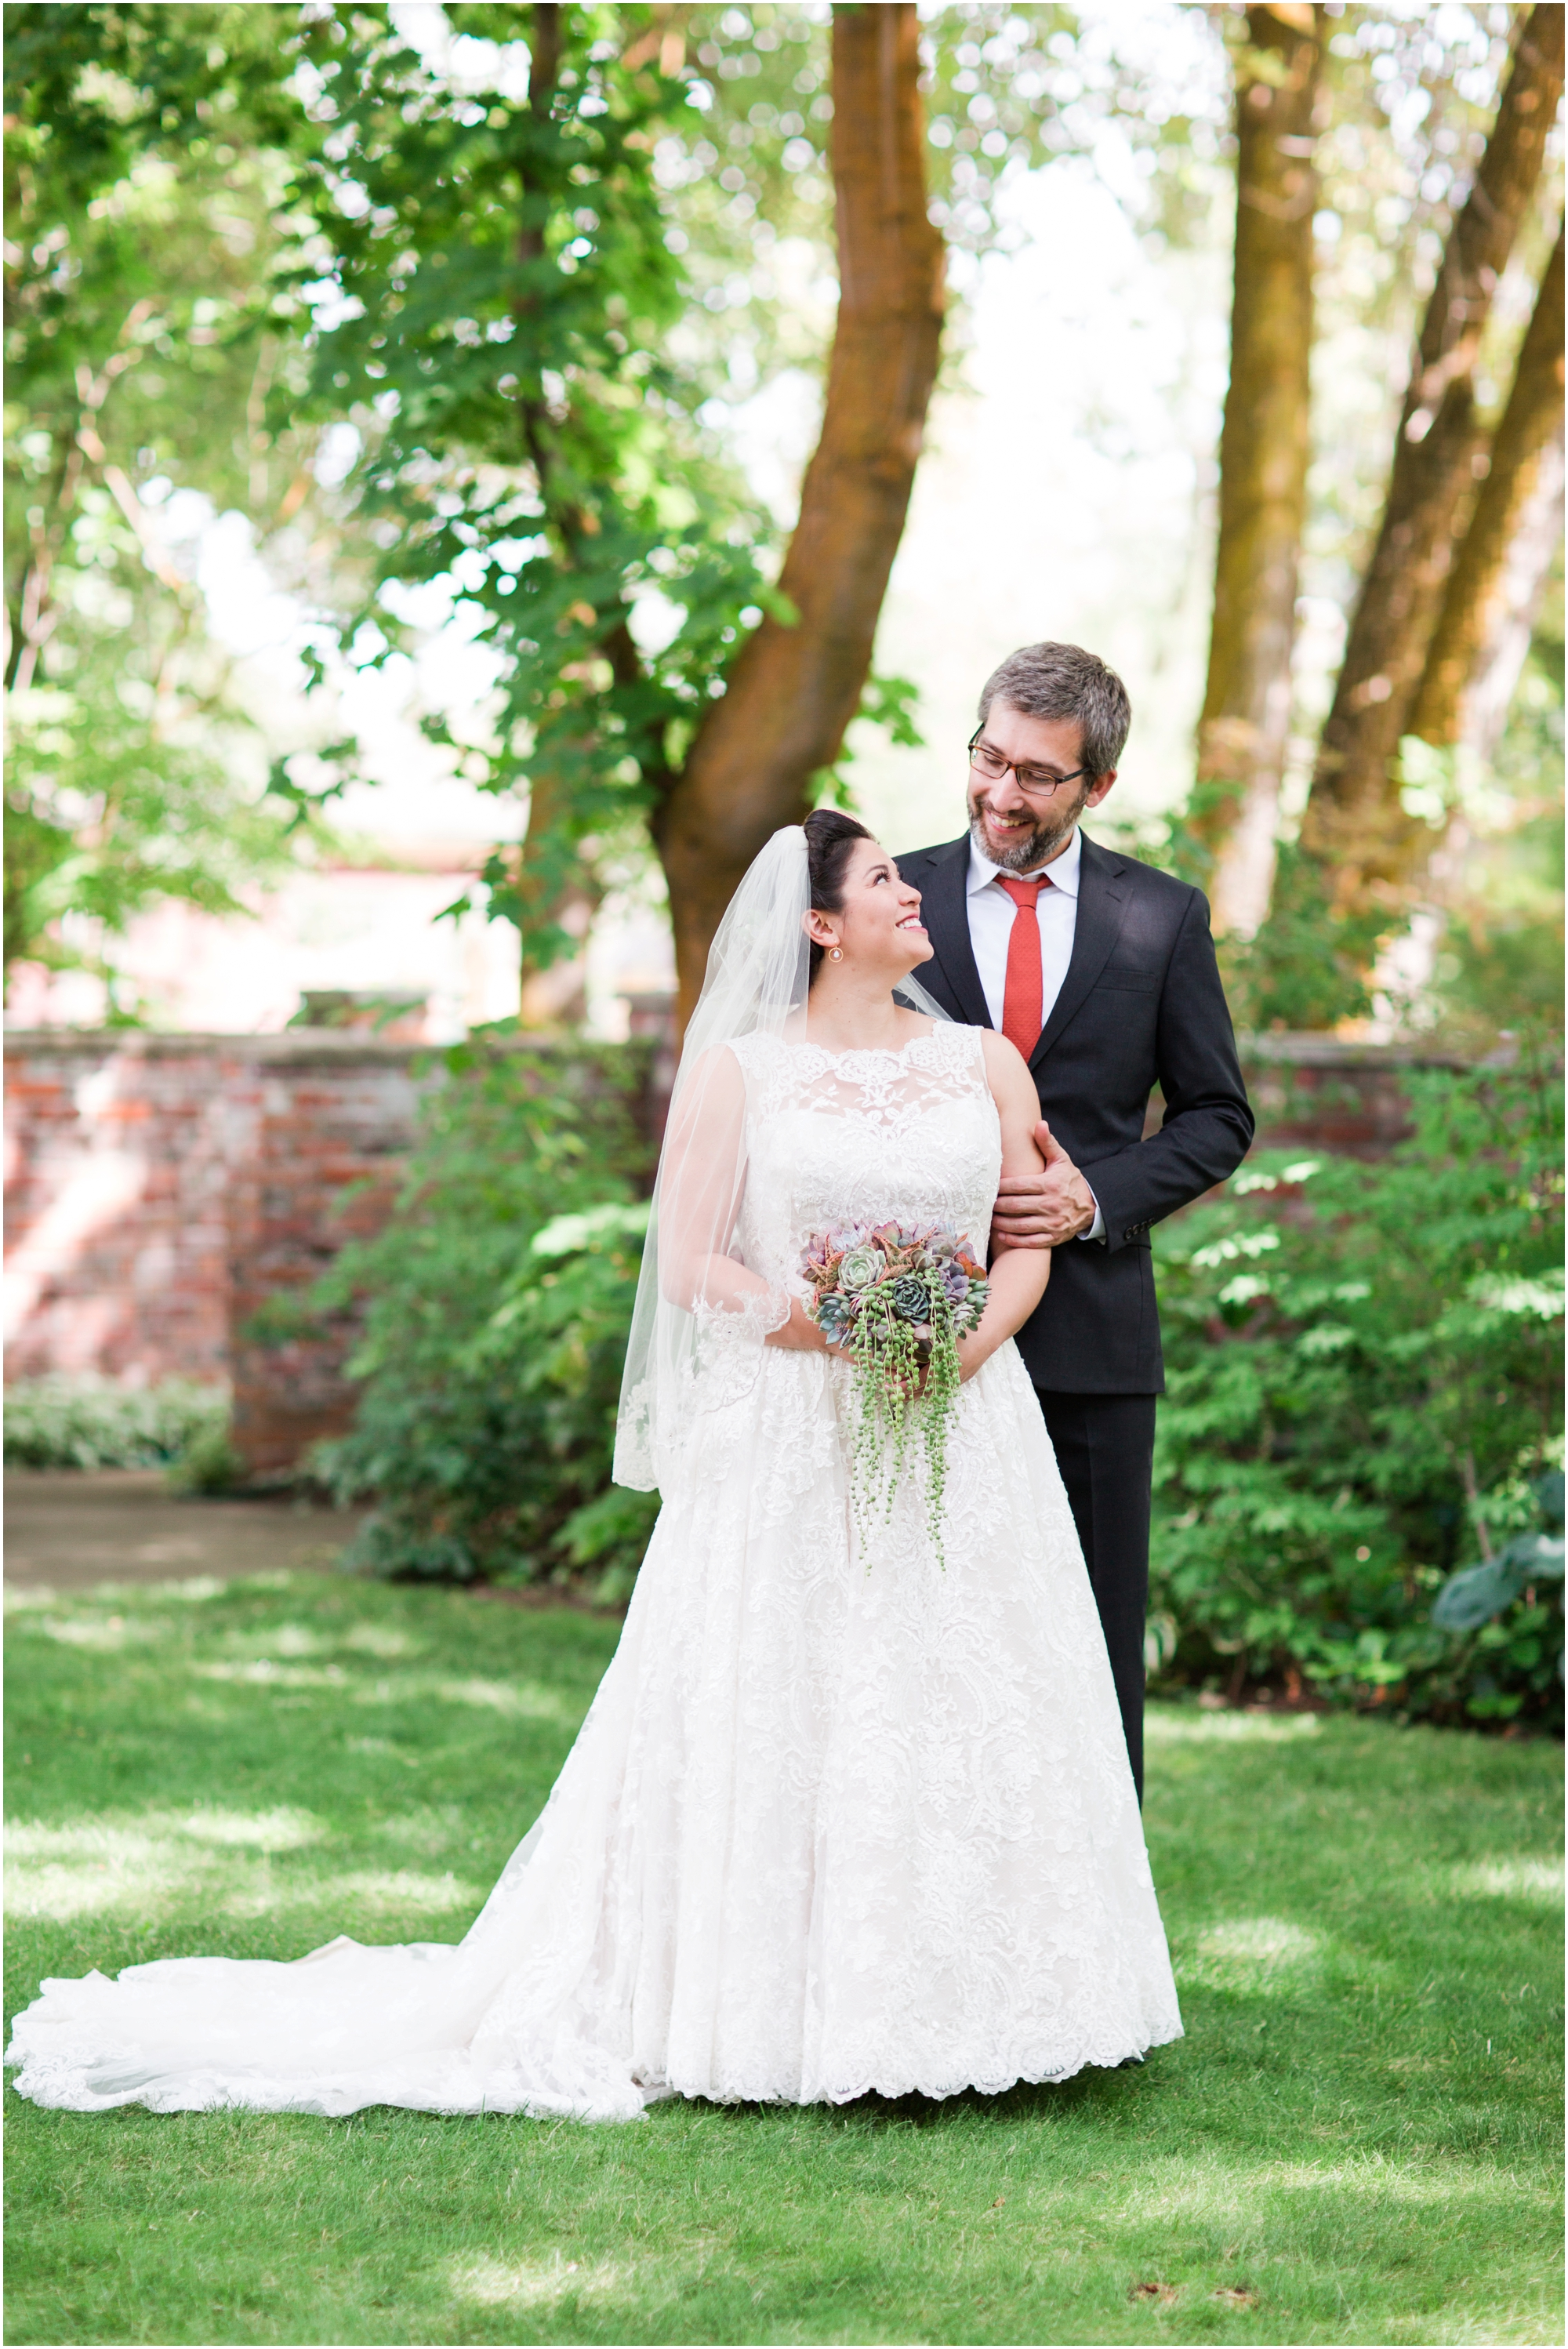 Garden wedding in Ellensburg, WA. Photos by Briana Calderon Photography based in the greater Seattle-Tacoma Area._1312.jpg